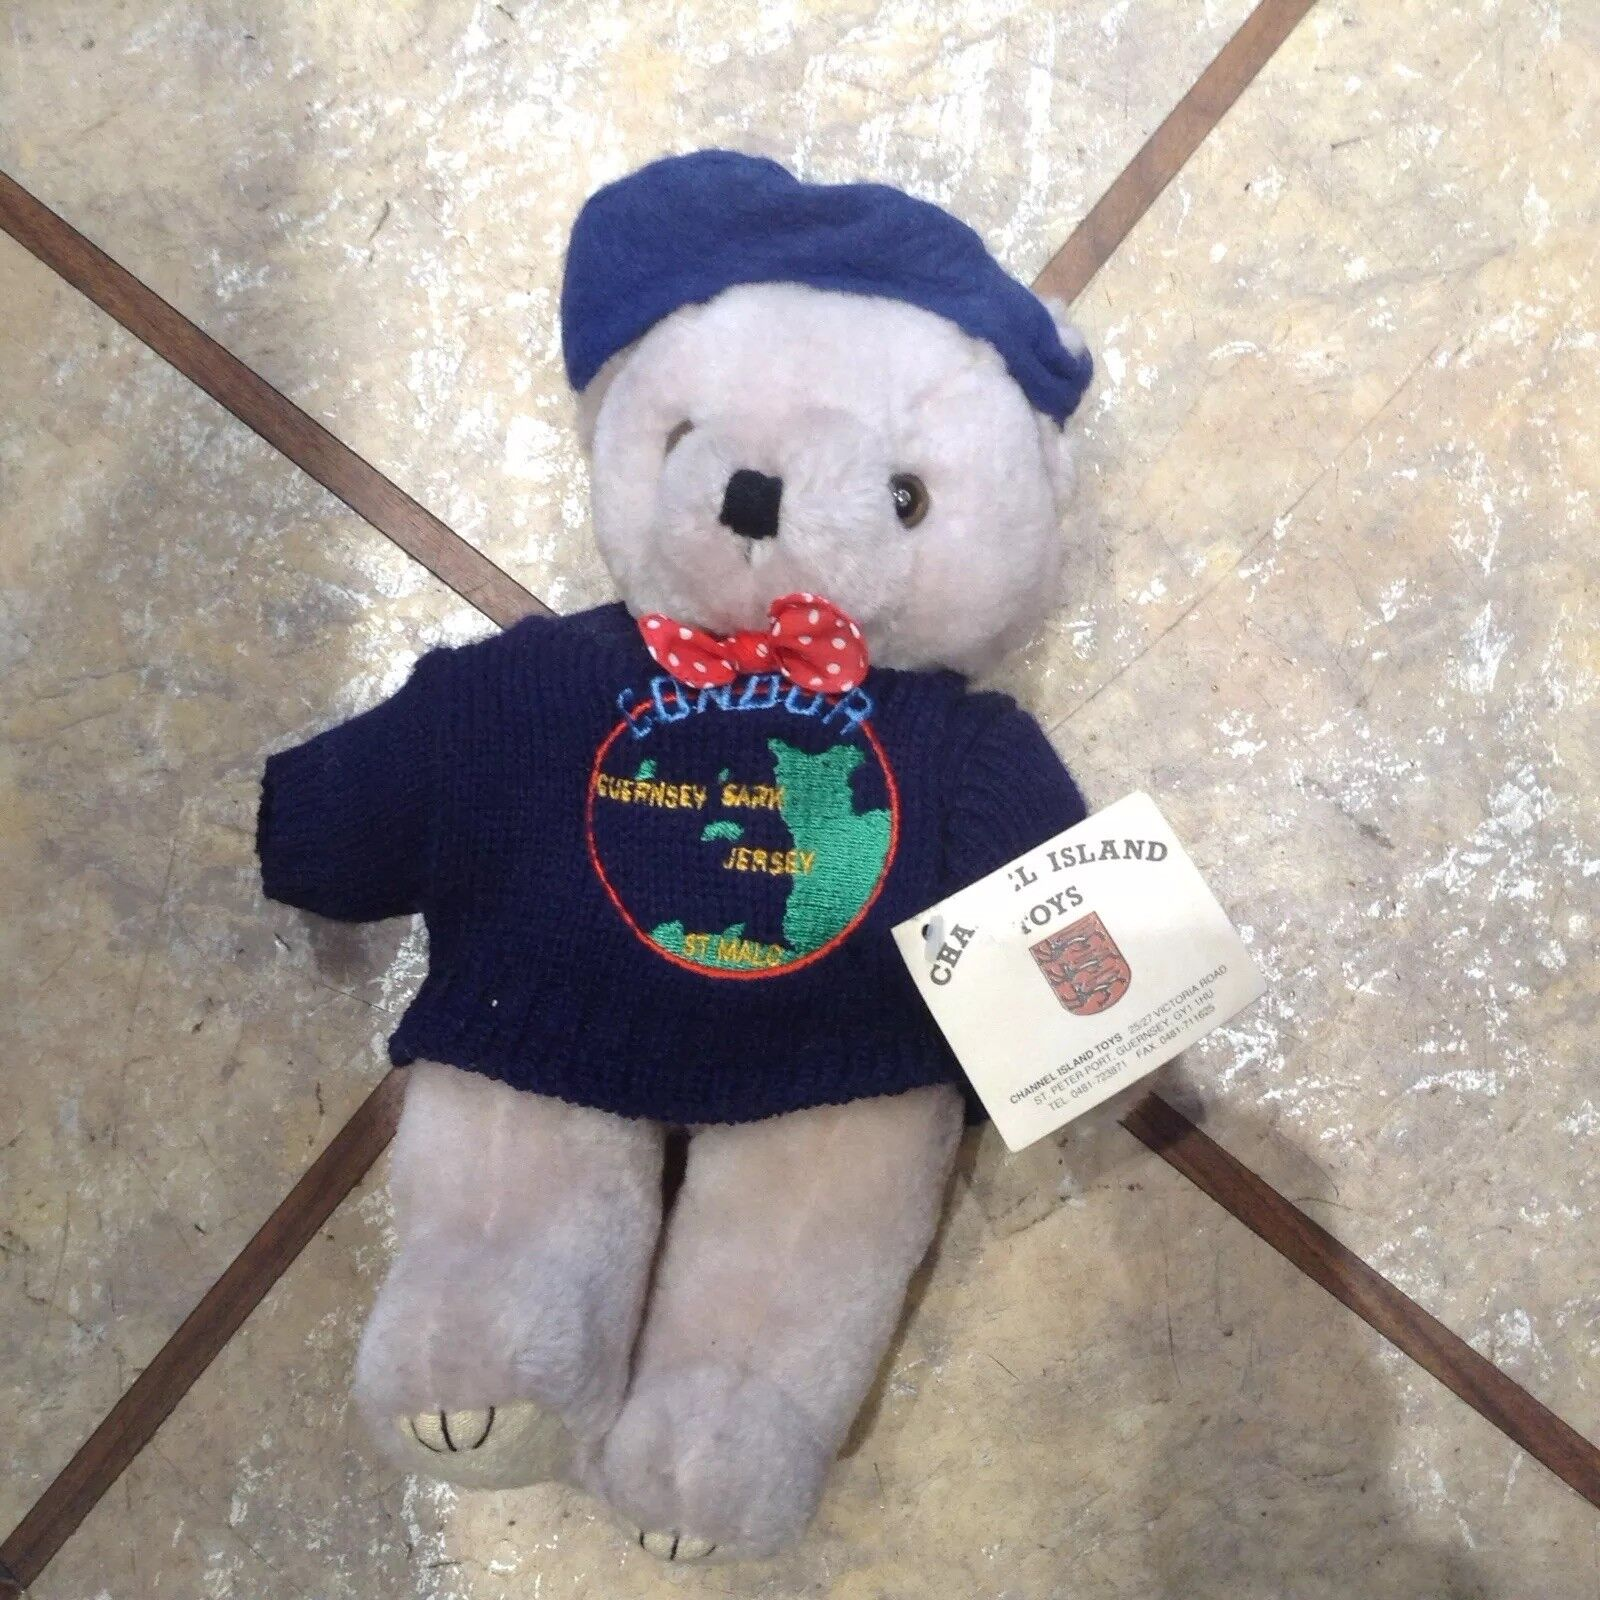 RARE Condor Teddy Bear In Jumper & Beret by by by Channel Island Toys & friends bundle cc9f1d